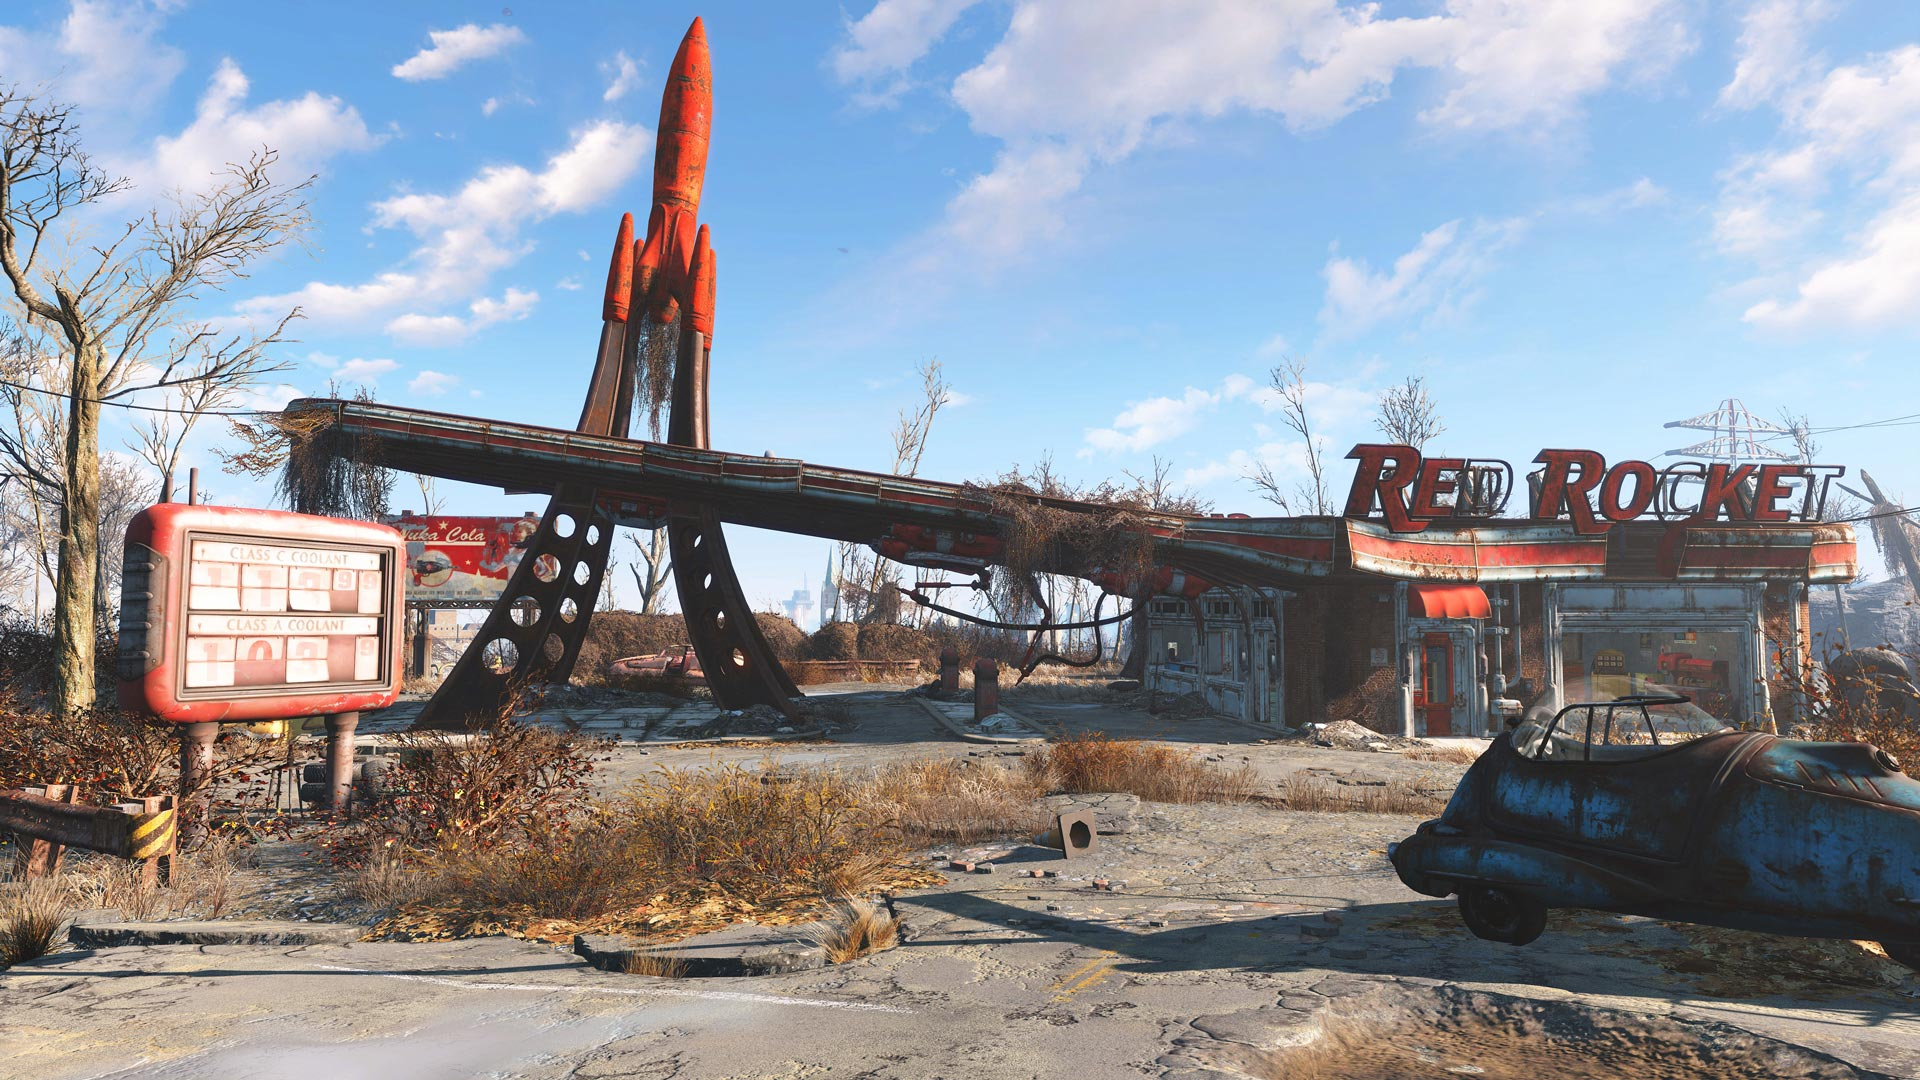 Fallout 4 Vr Release Date June 2017 Or Sooner On Htc Vive